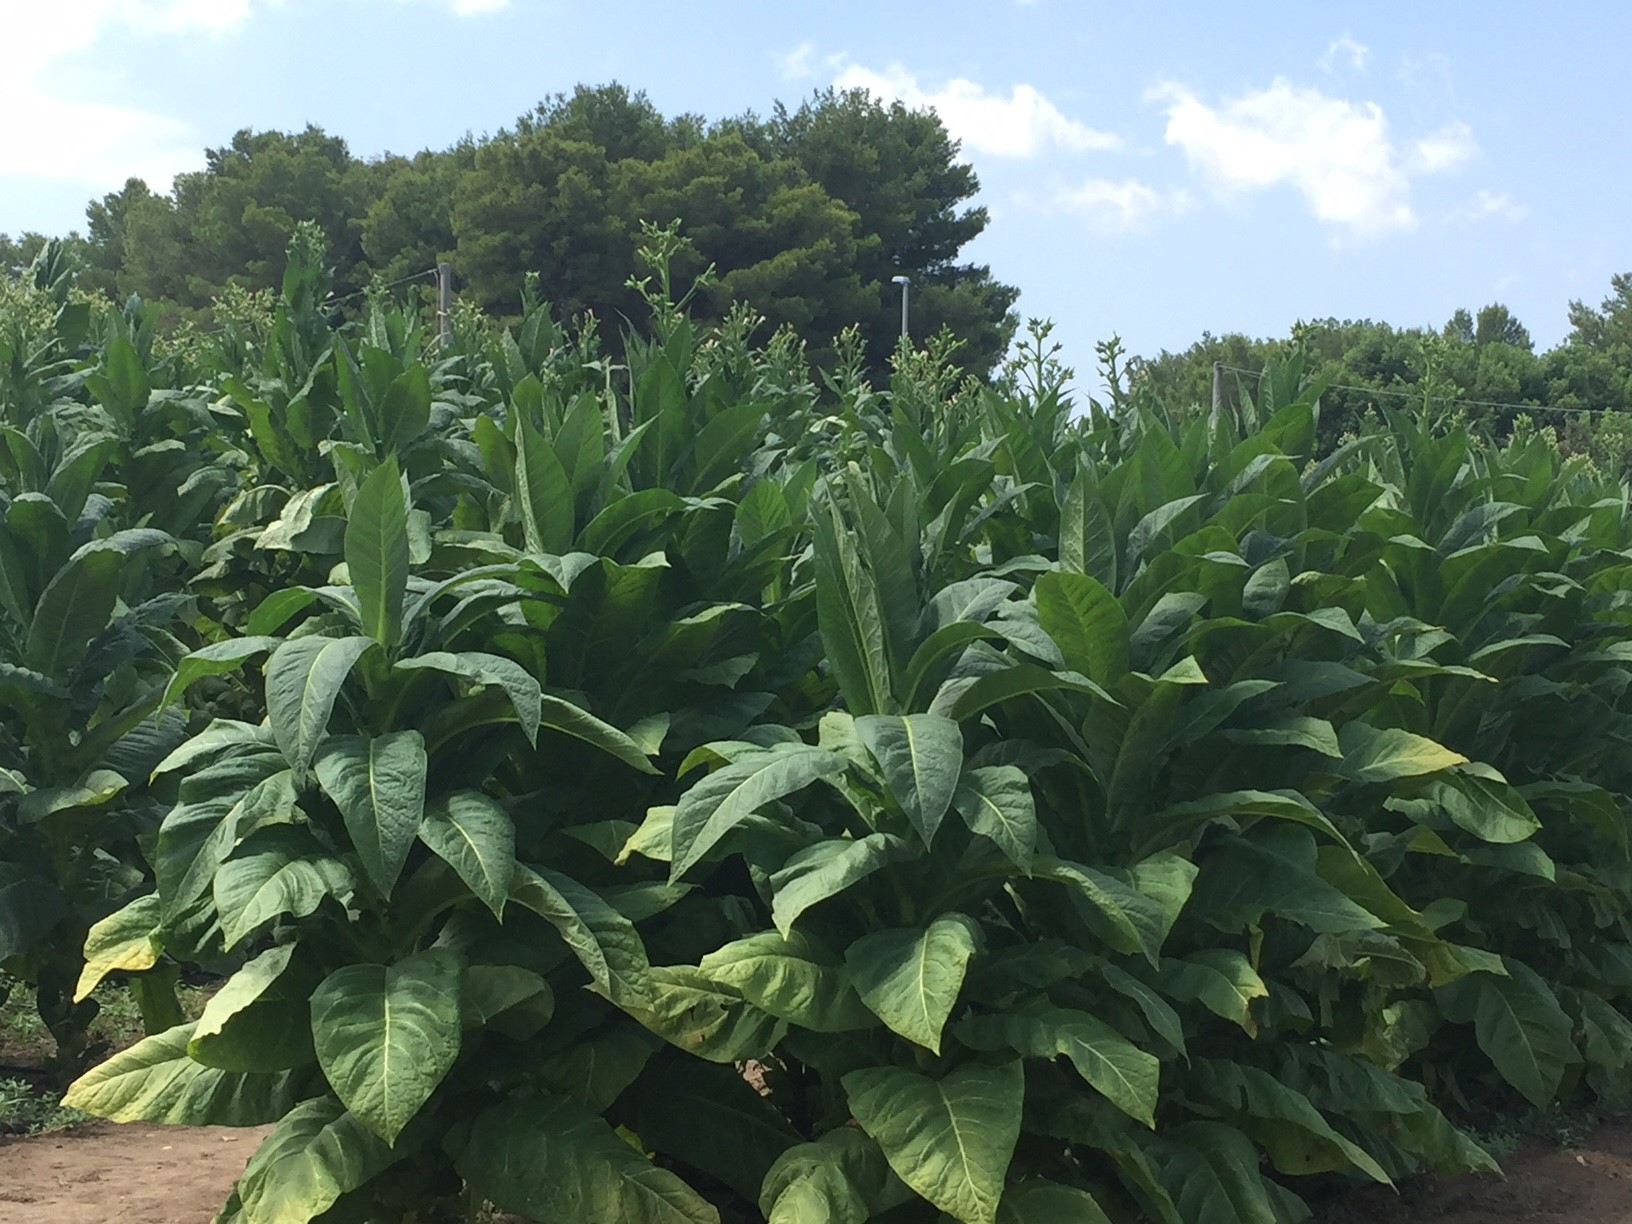 Tobacco plants grow in Italy